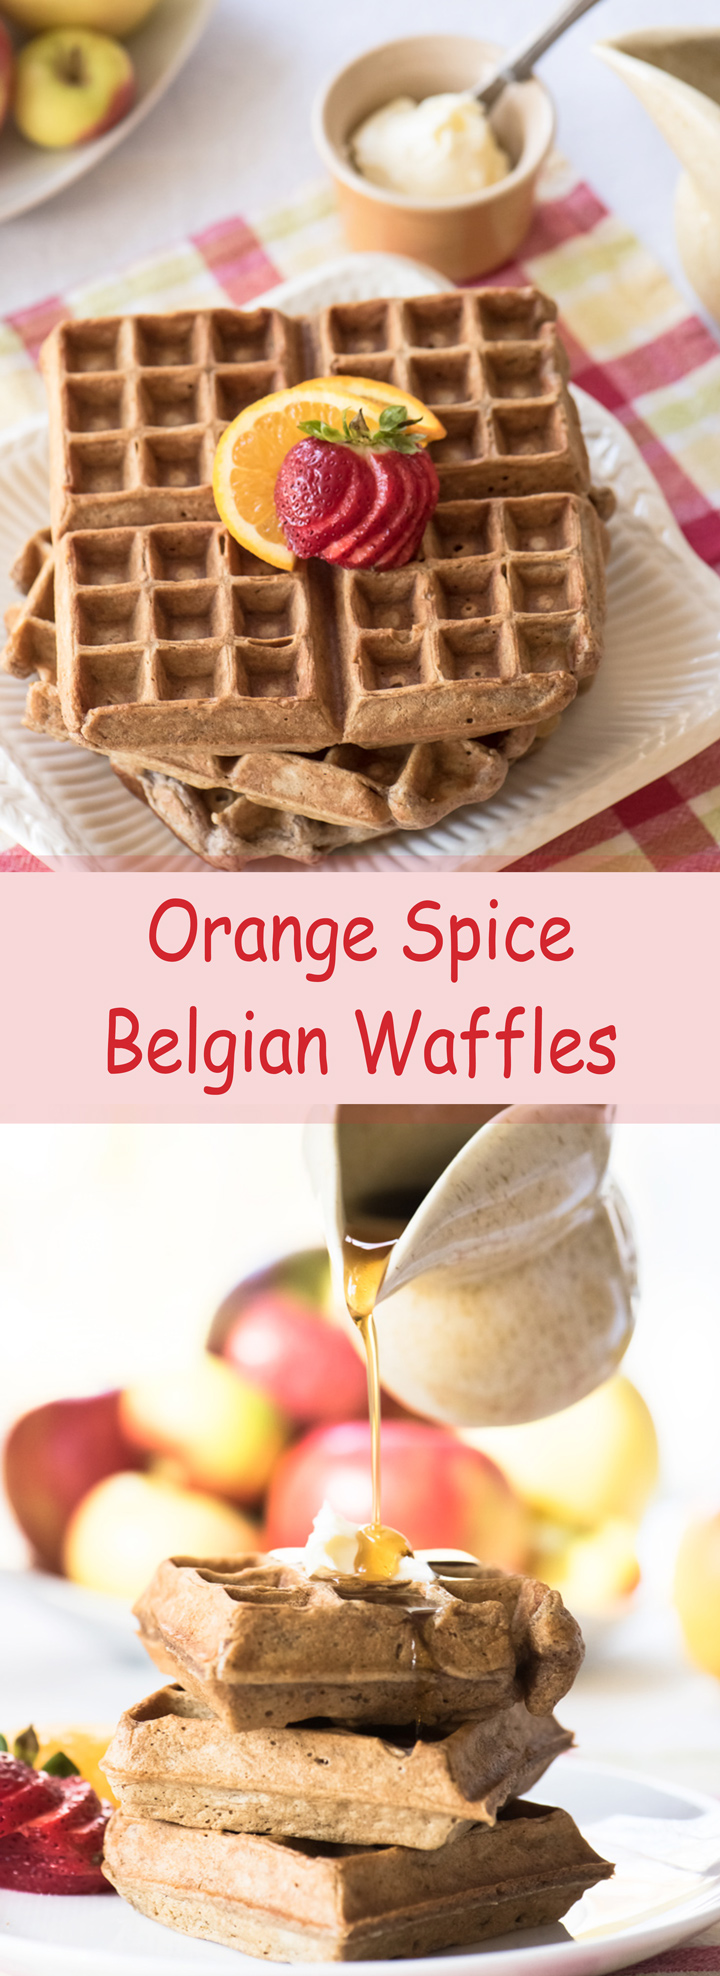 Orange Spice Belgian Waffles recipe. Light and crispy waffles with the spices of pumpkin pie and fresh ginger.